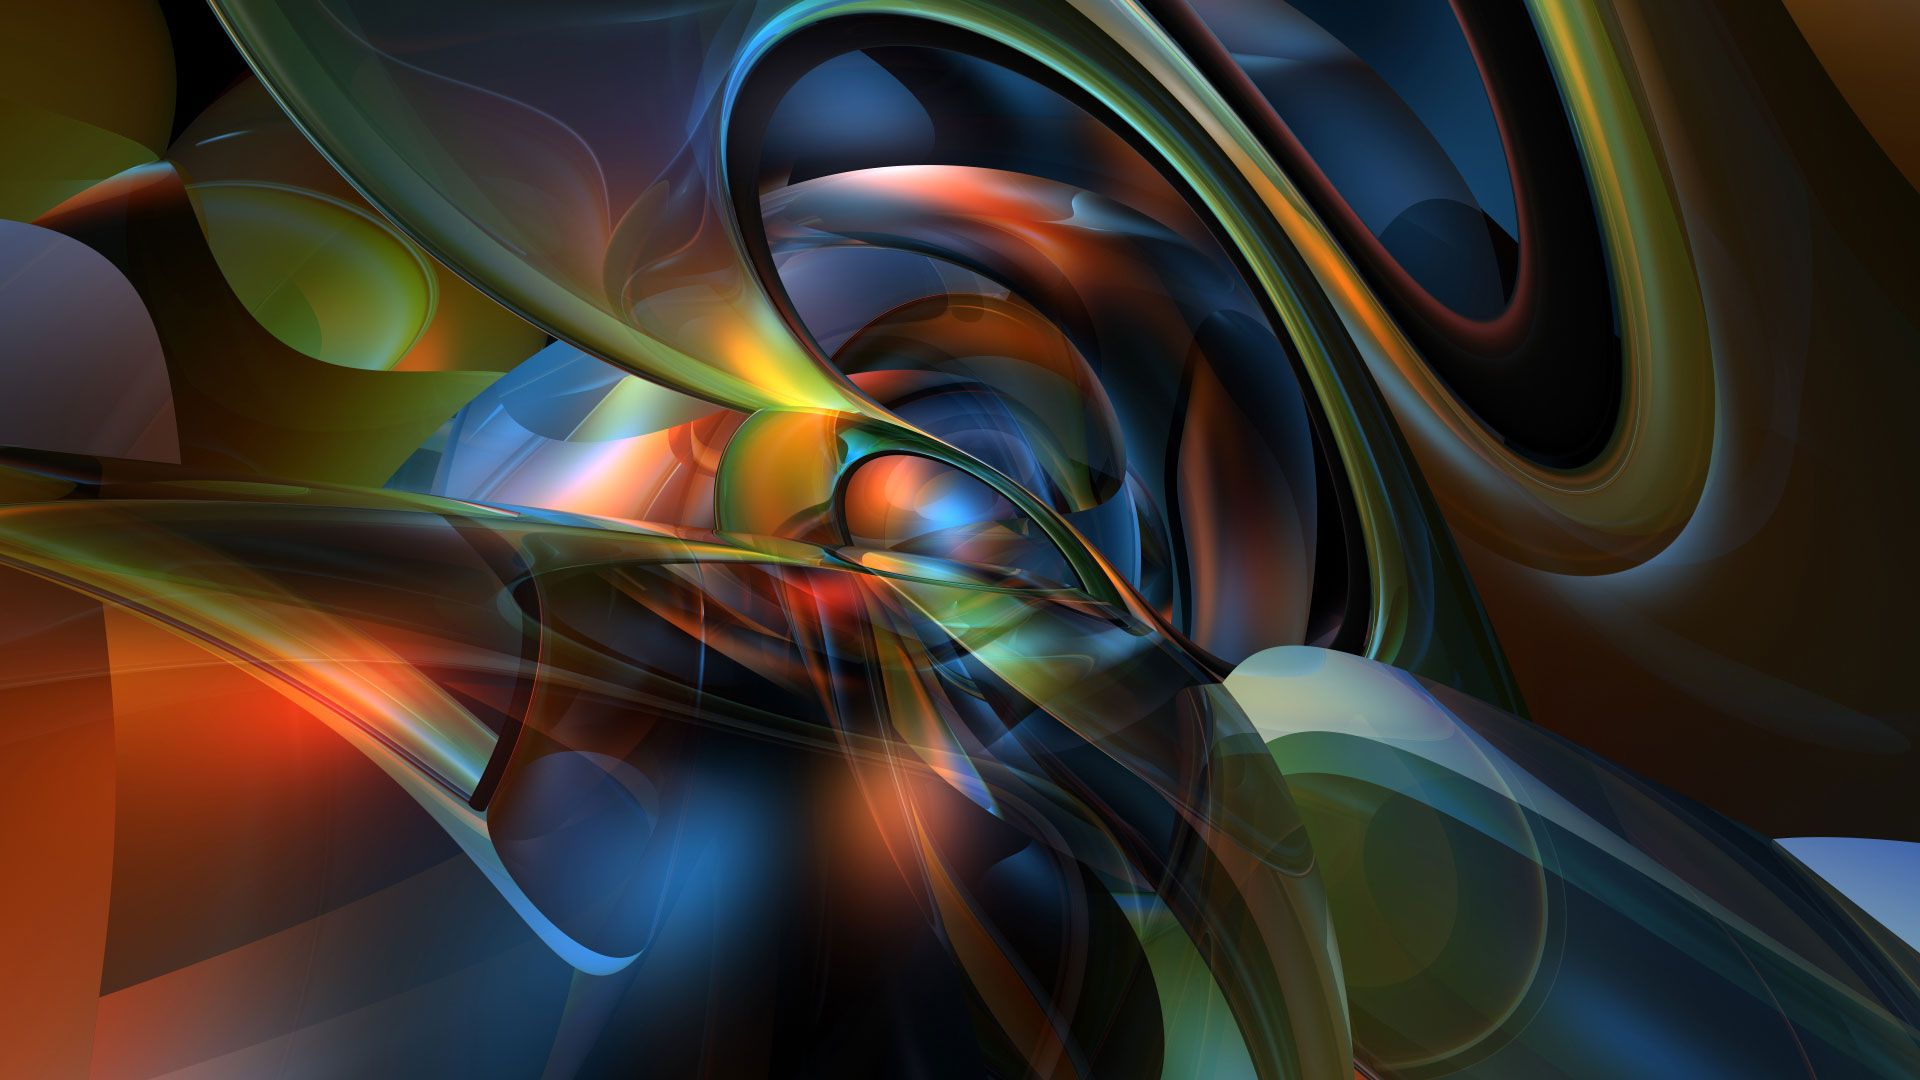 Abstract Designs High Definition Wallpaper Abstract Abstract Wallpaper Modern Art Abstract